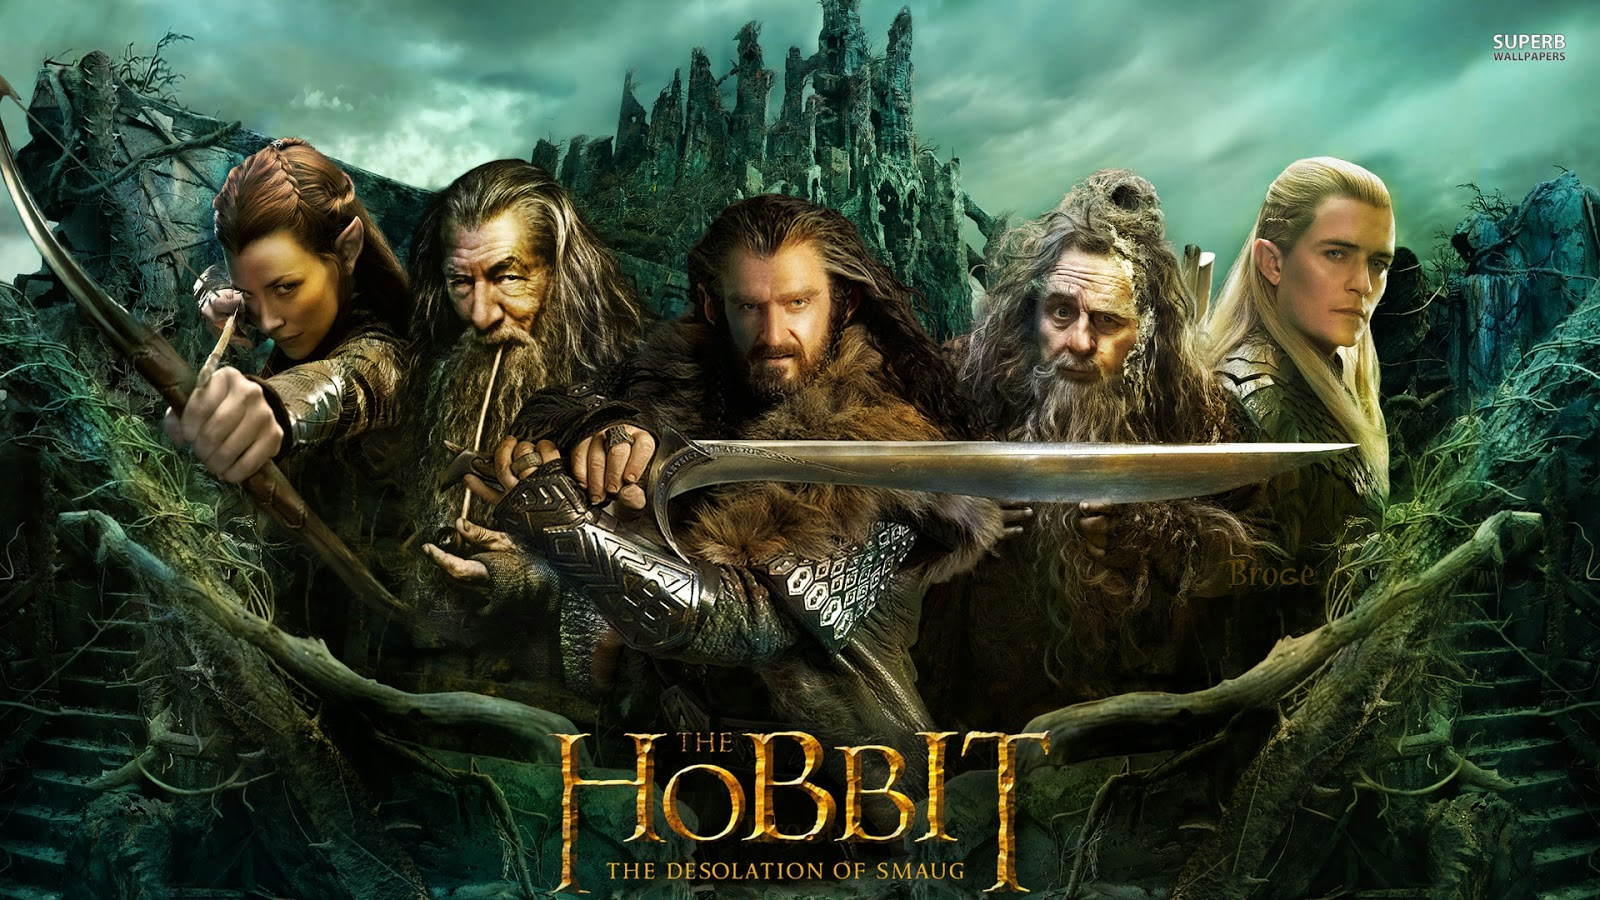 The Hobbit Desolation of Smaug shuud uzeh